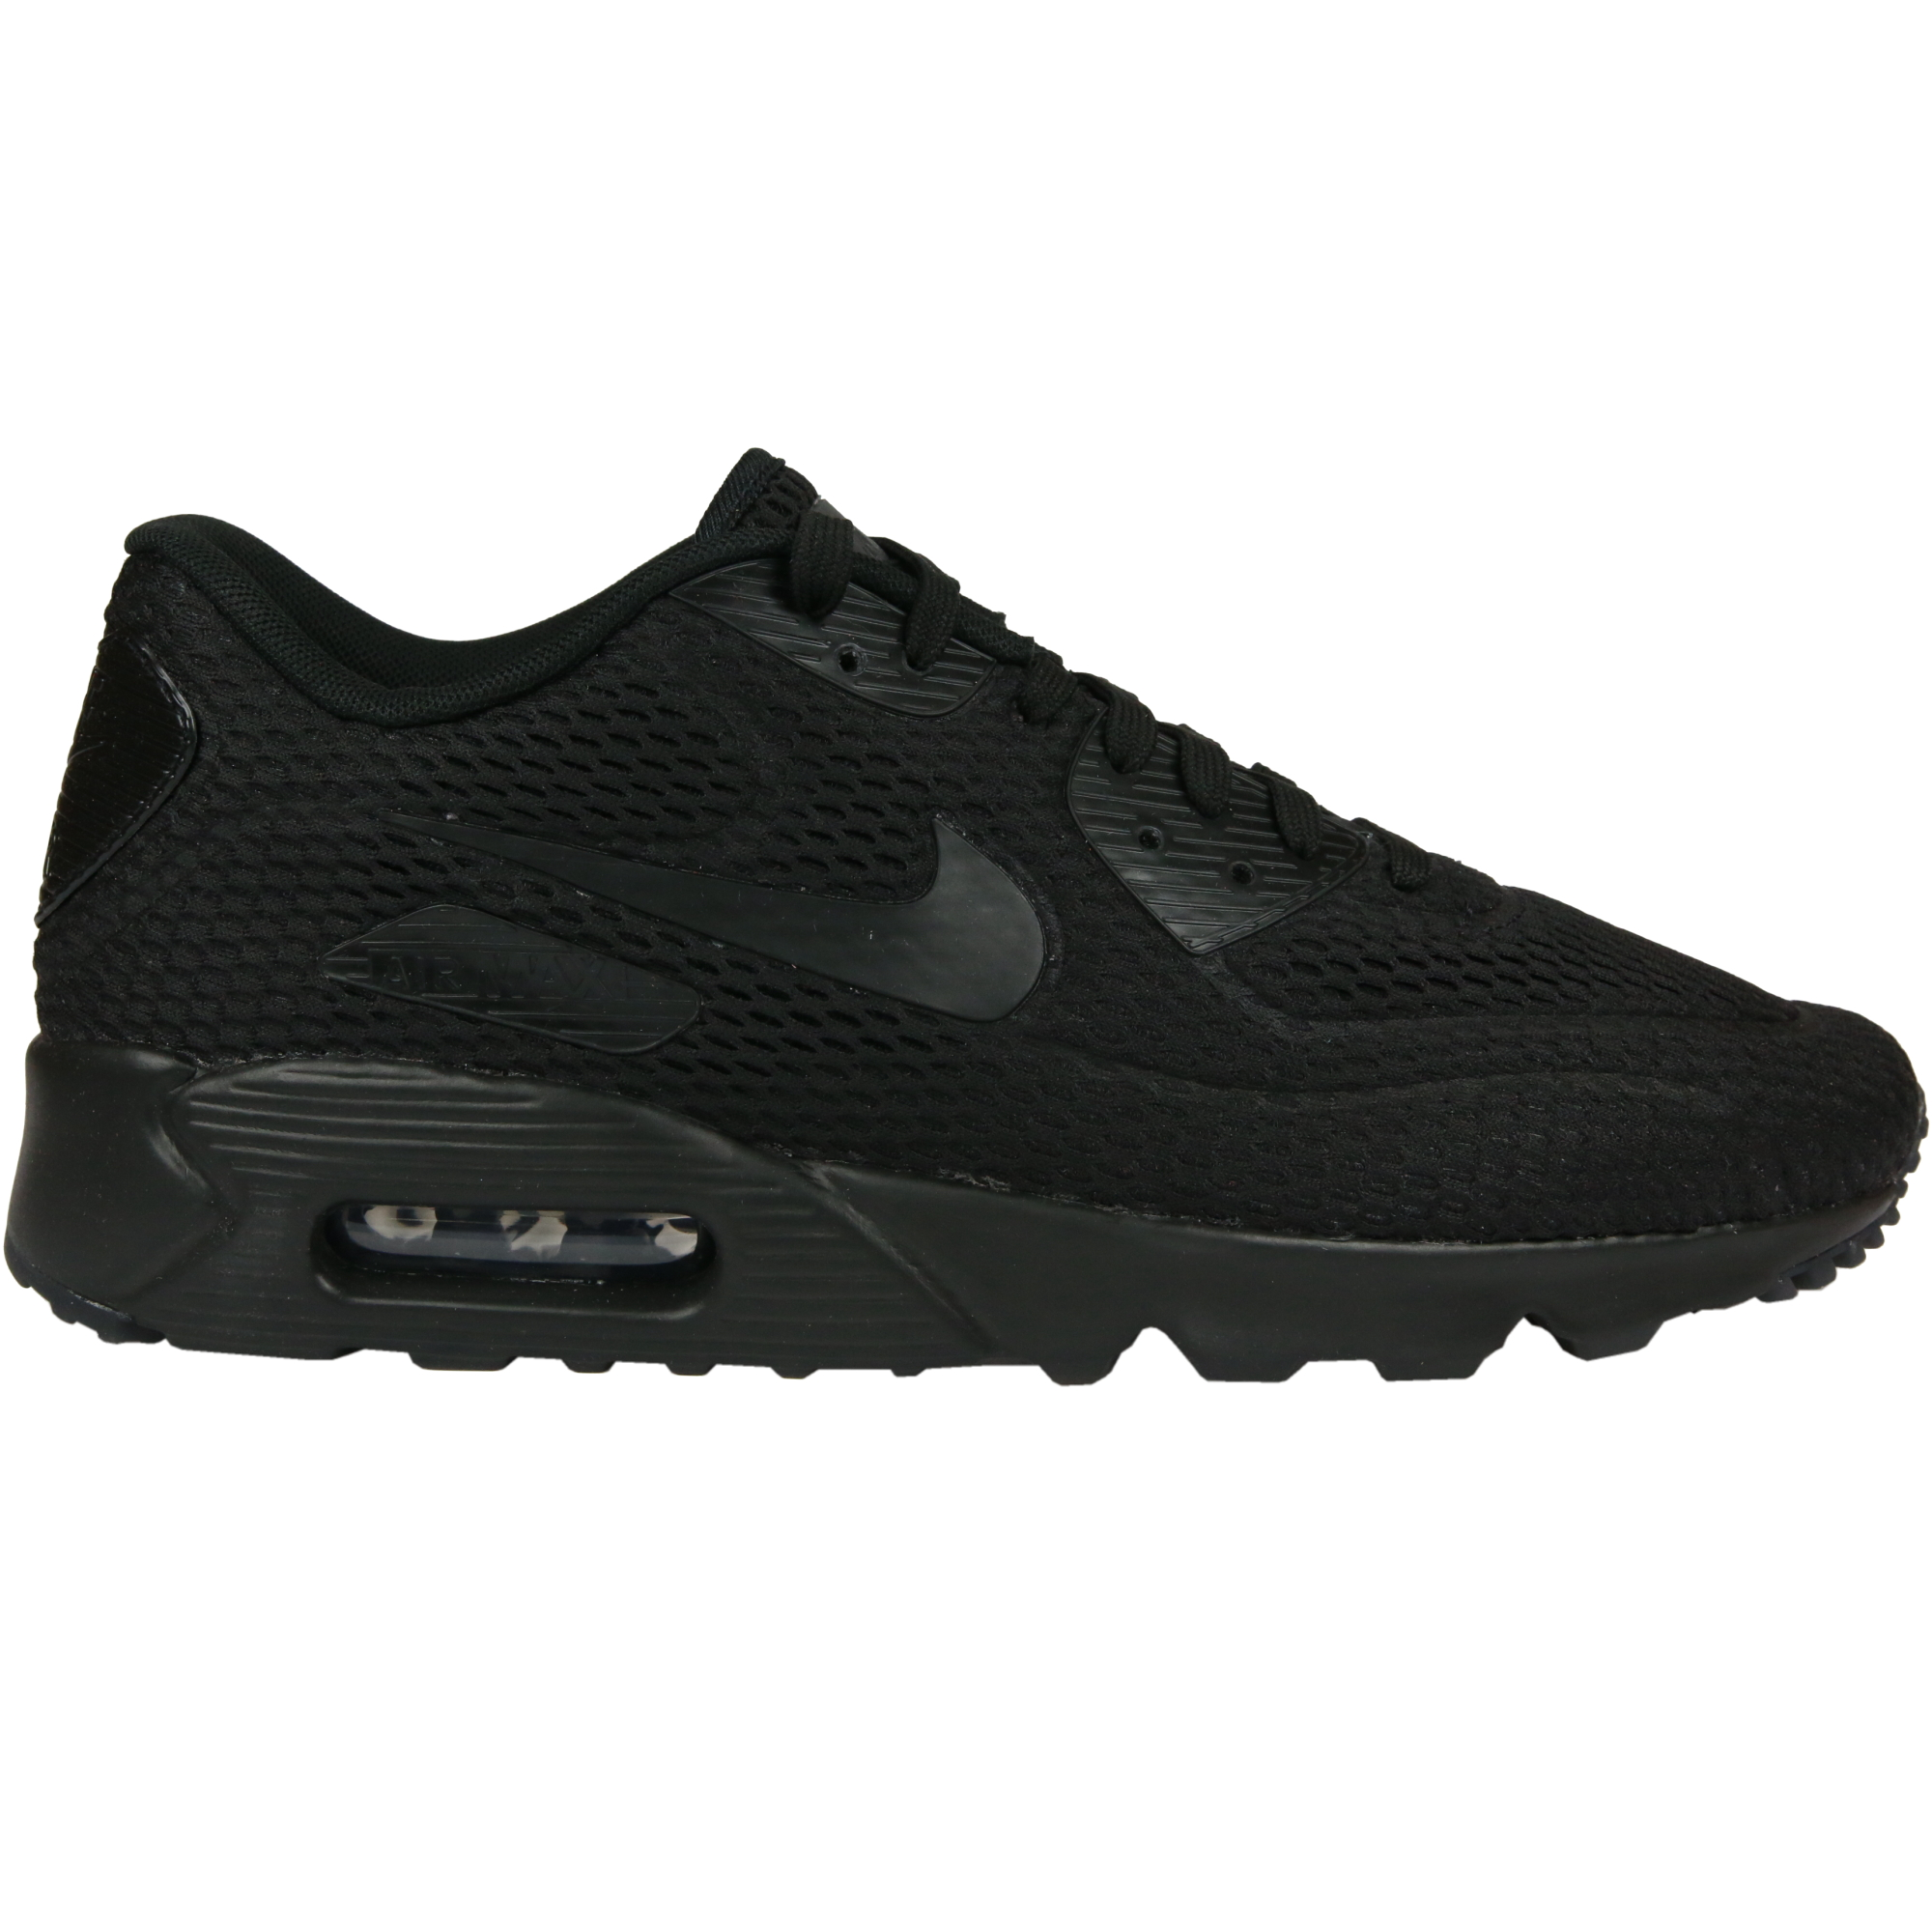 Nike Air Max 90 Essential Zapatos TurnZapatos TurnZapatos TurnZapatos Sneaker Herren Echtleder Grau Blau dd9a25